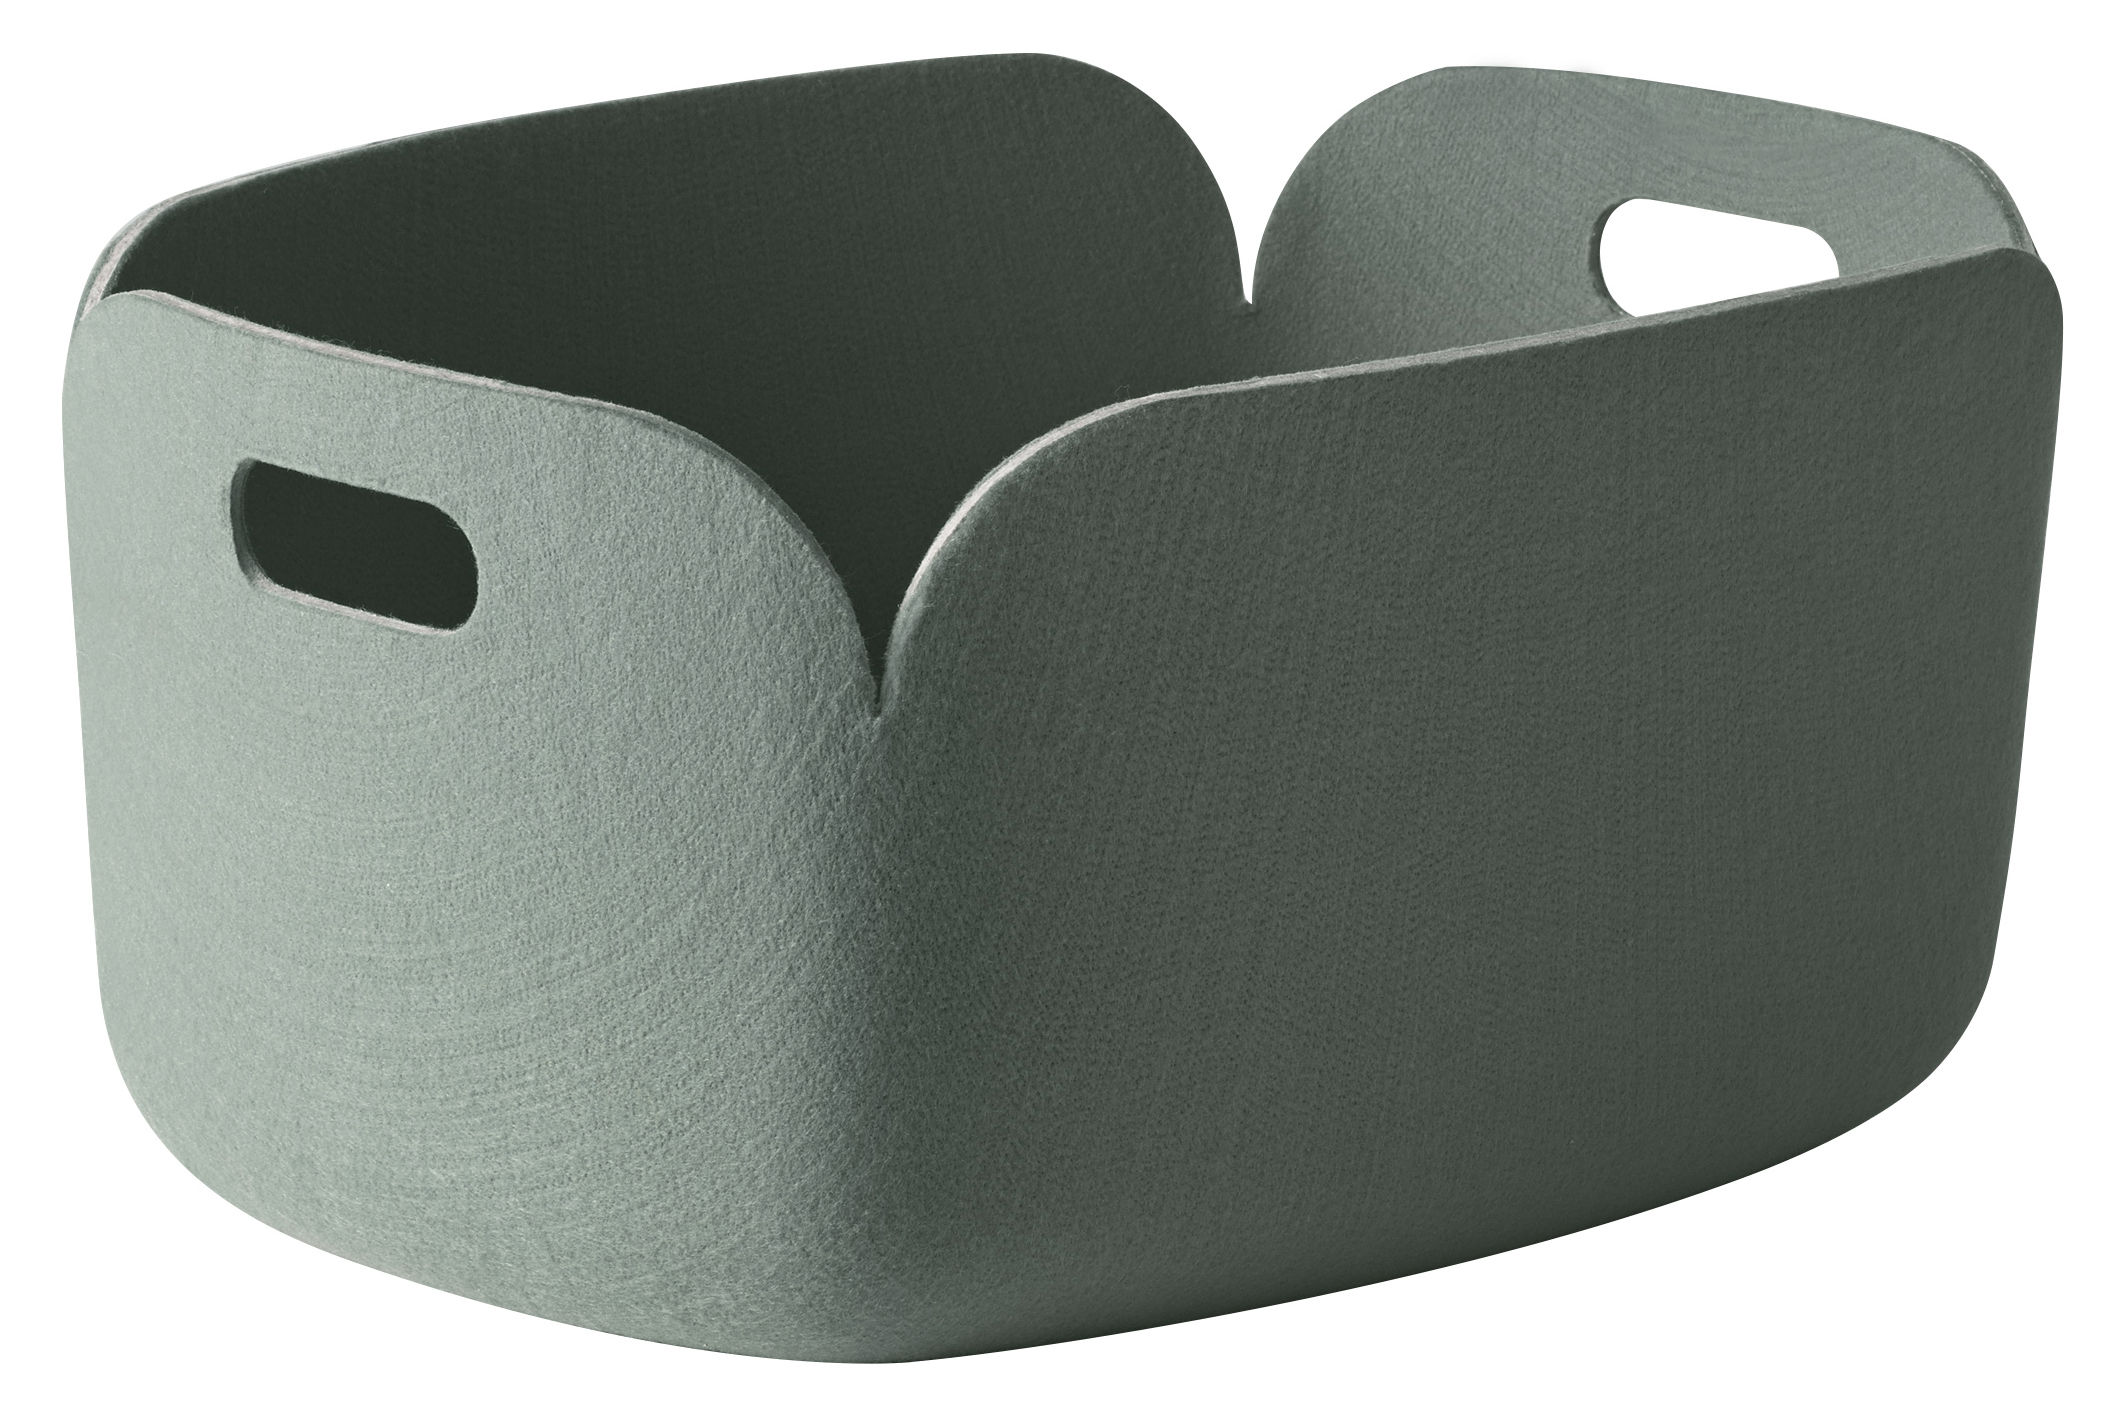 Decoration - Boxes & Baskets - Restore Basket - 100% recycled by Muuto - Dusty green - Recycled felt